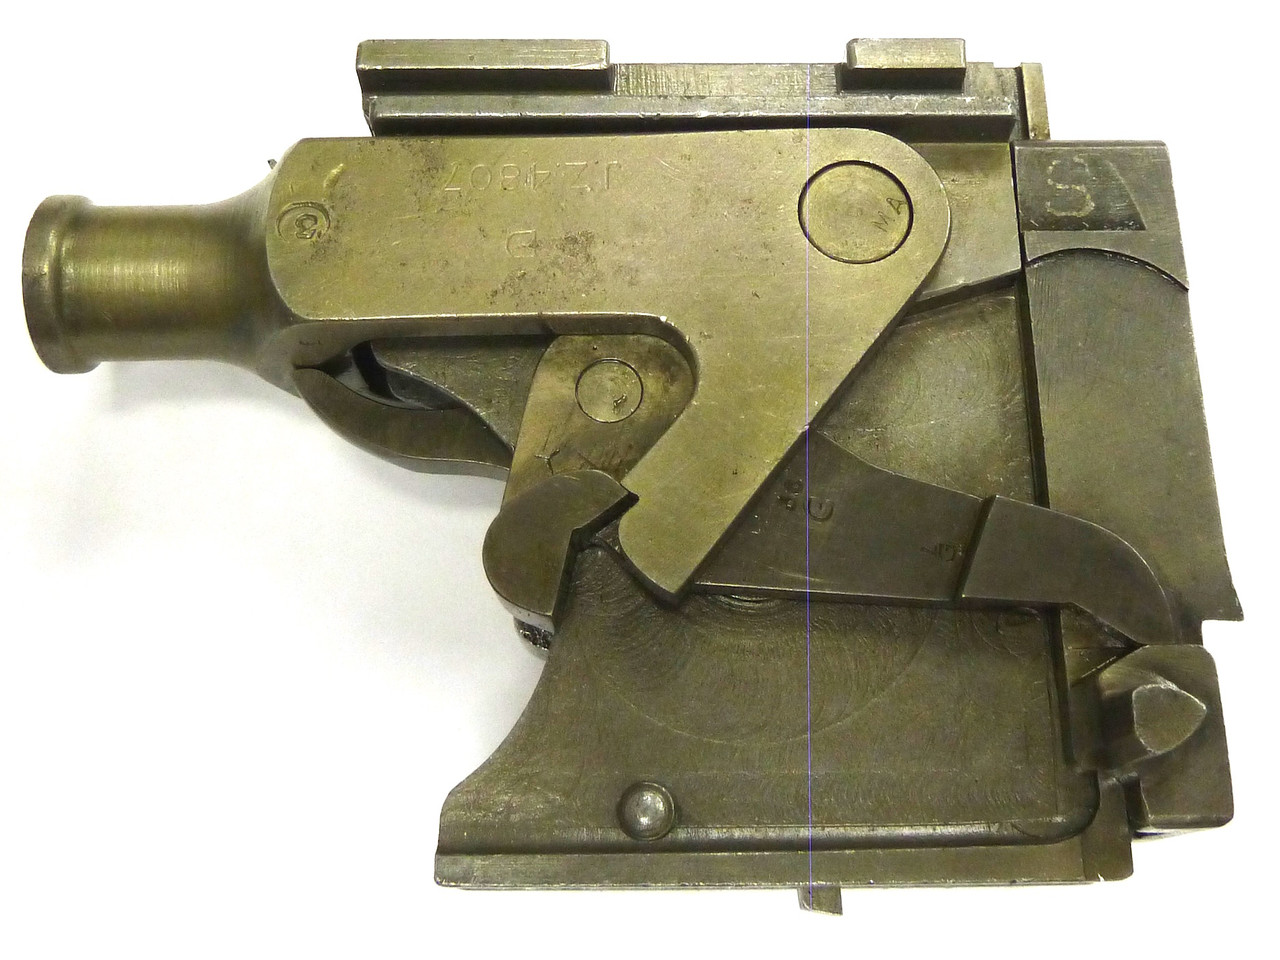 Vickers Lock Assembly - Mixed Manufacturers - good.+ cond., w/extra lock spring